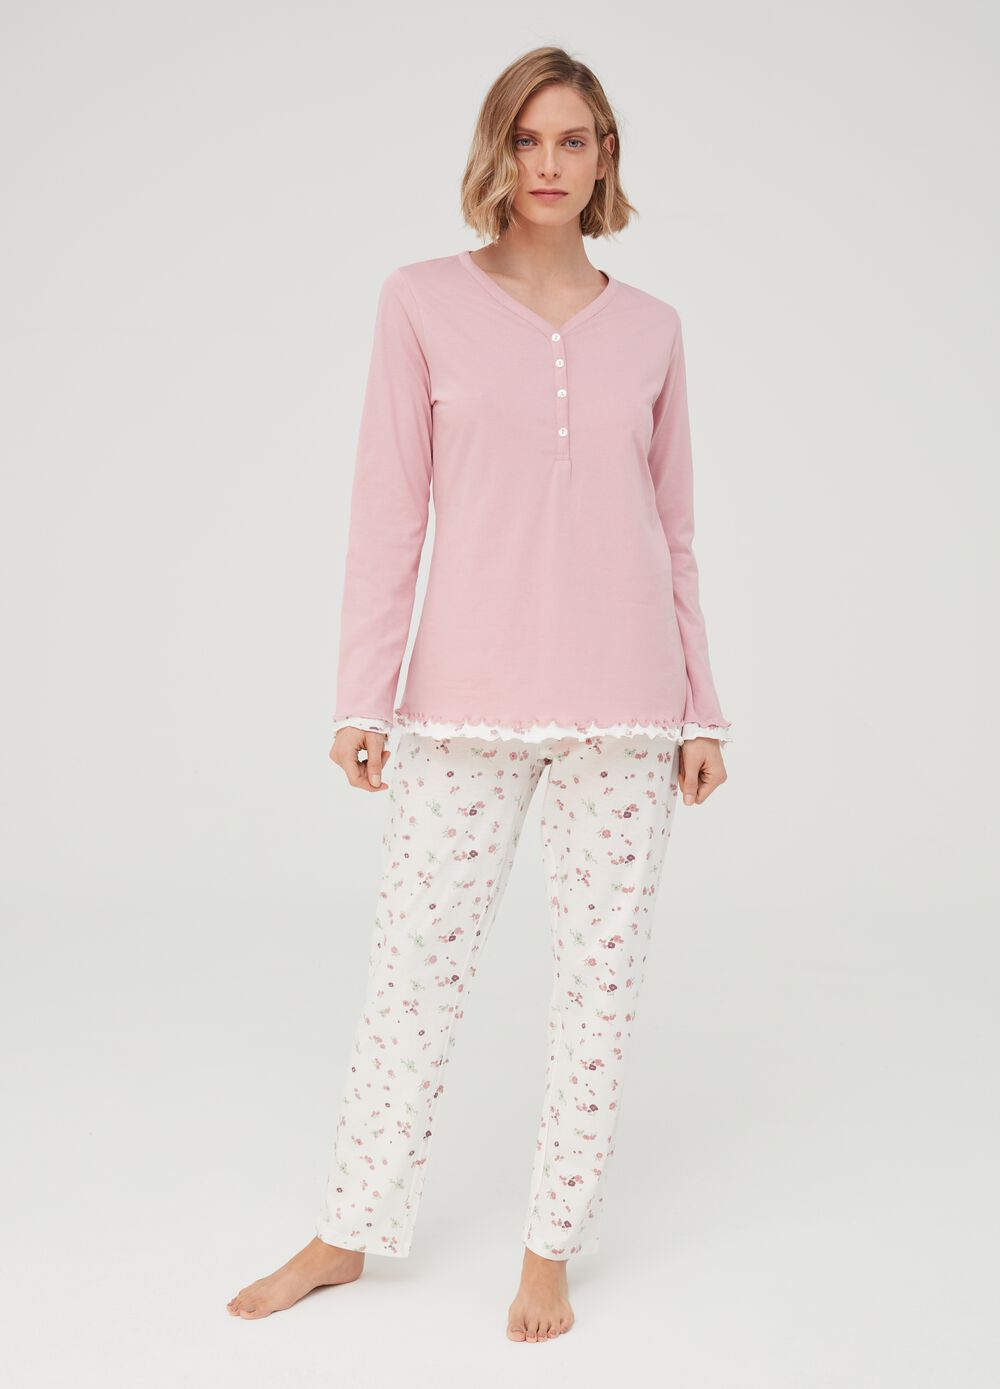 Floral pyjamas in 100% organic cotton